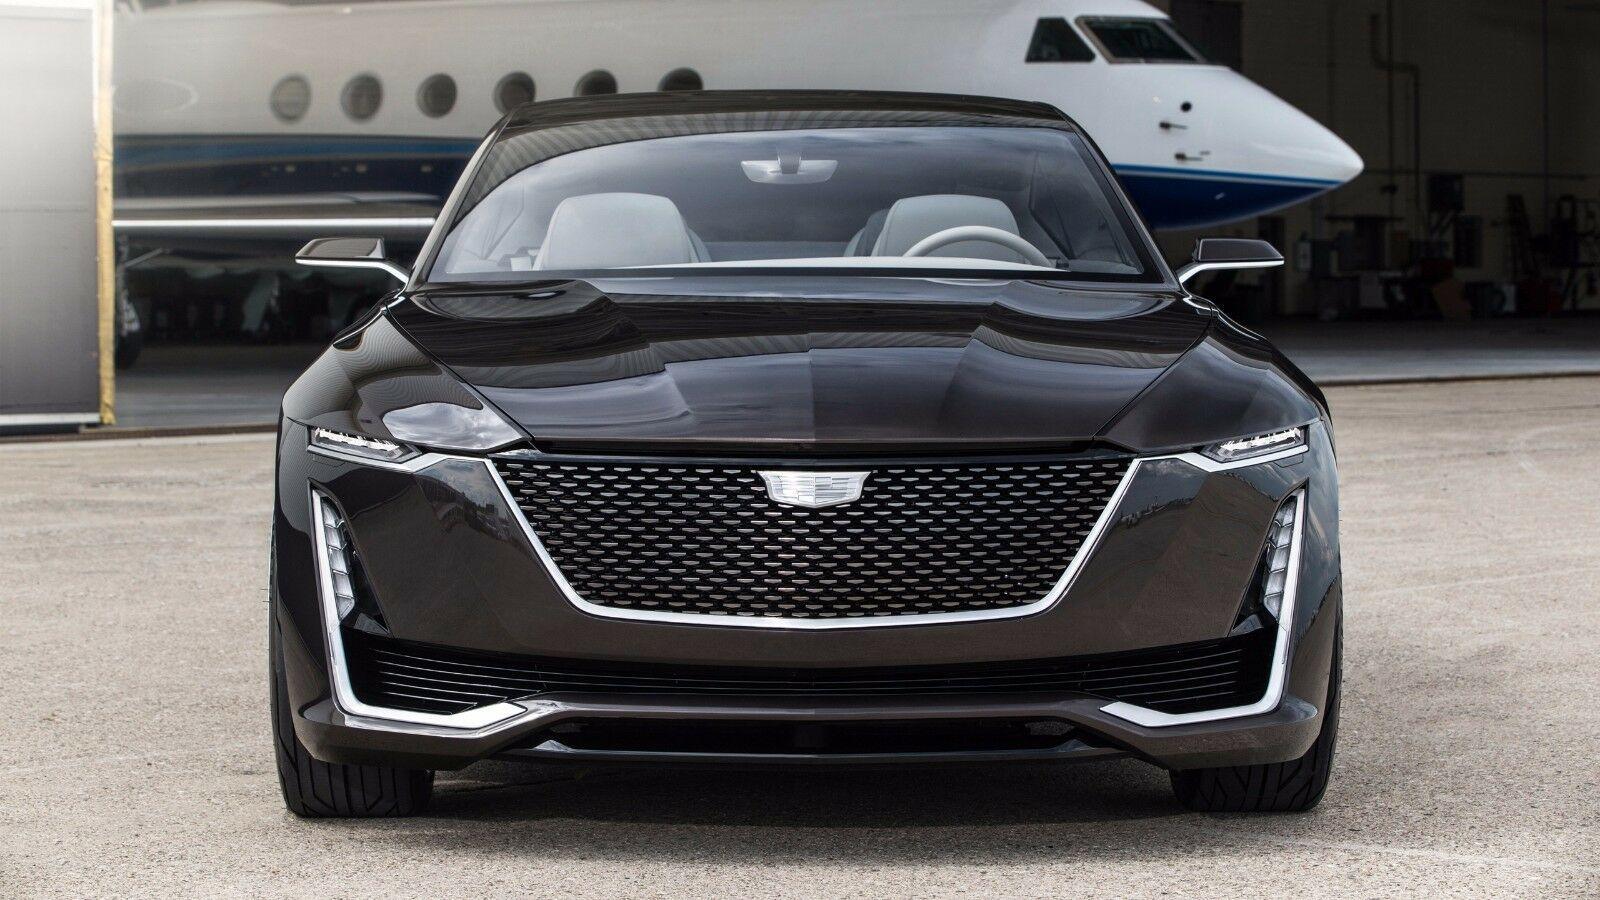 Primary image for 2016 Cadillac Escala Concept 3, 24X36 inch poster, luxury sedan touring